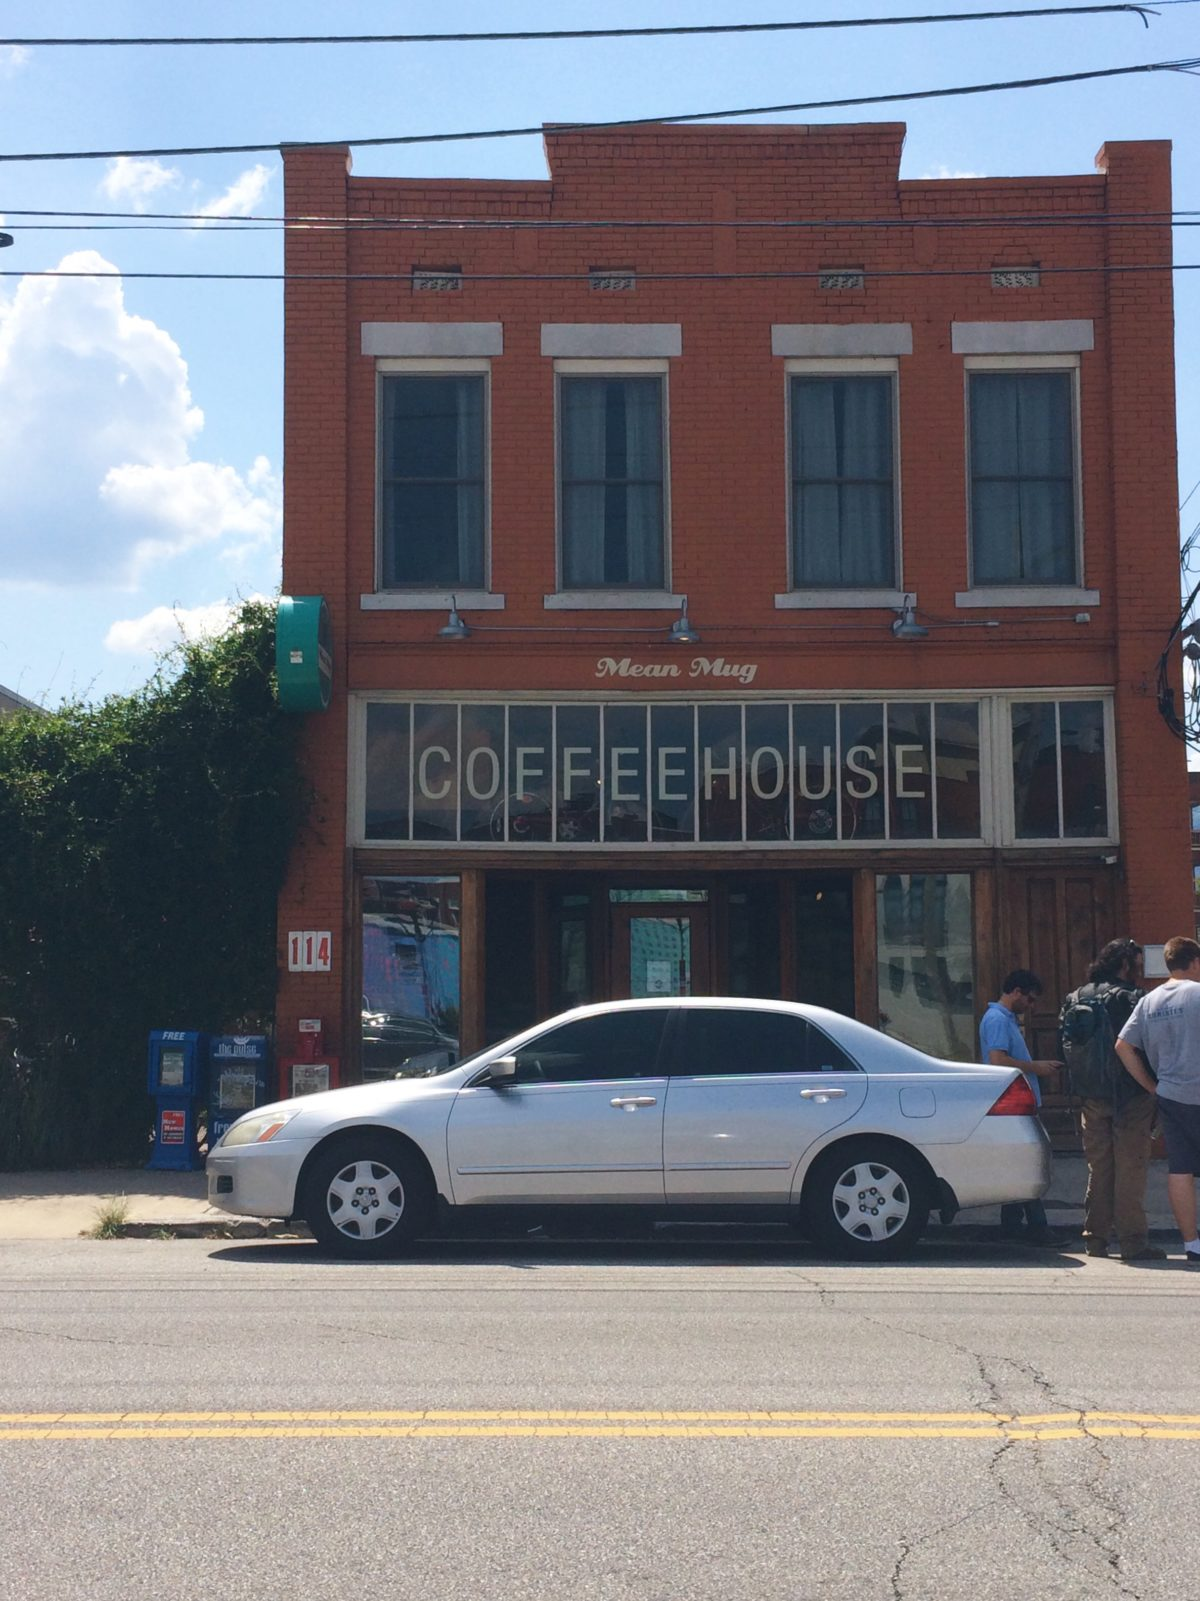 One of my favorite coffee shops in Chattanooga is Mean Mug Coffee. The atmostphere, the food and the people are all great.